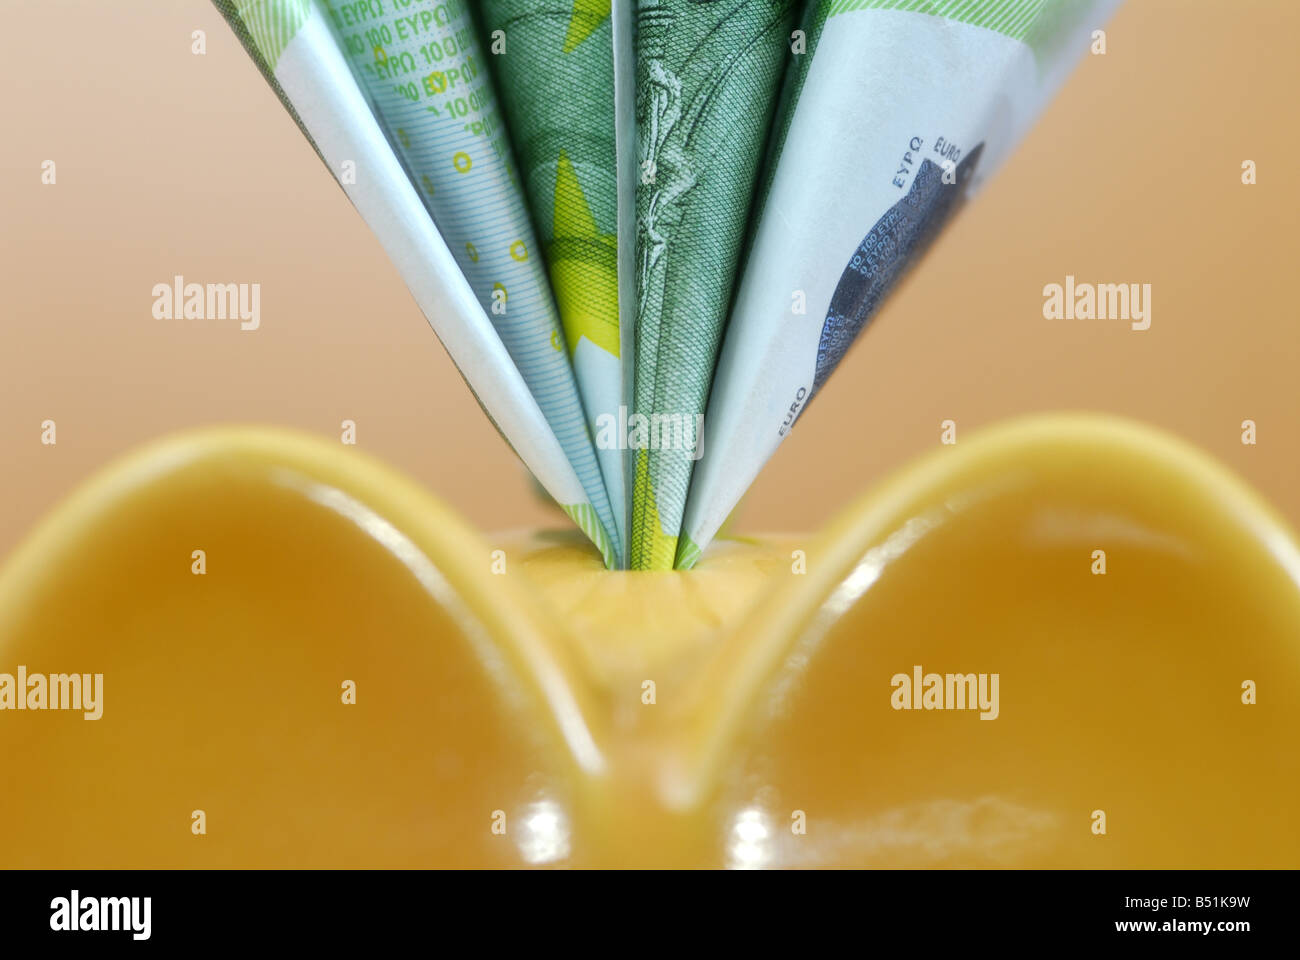 Piggy bank with banknotes - Stock Image